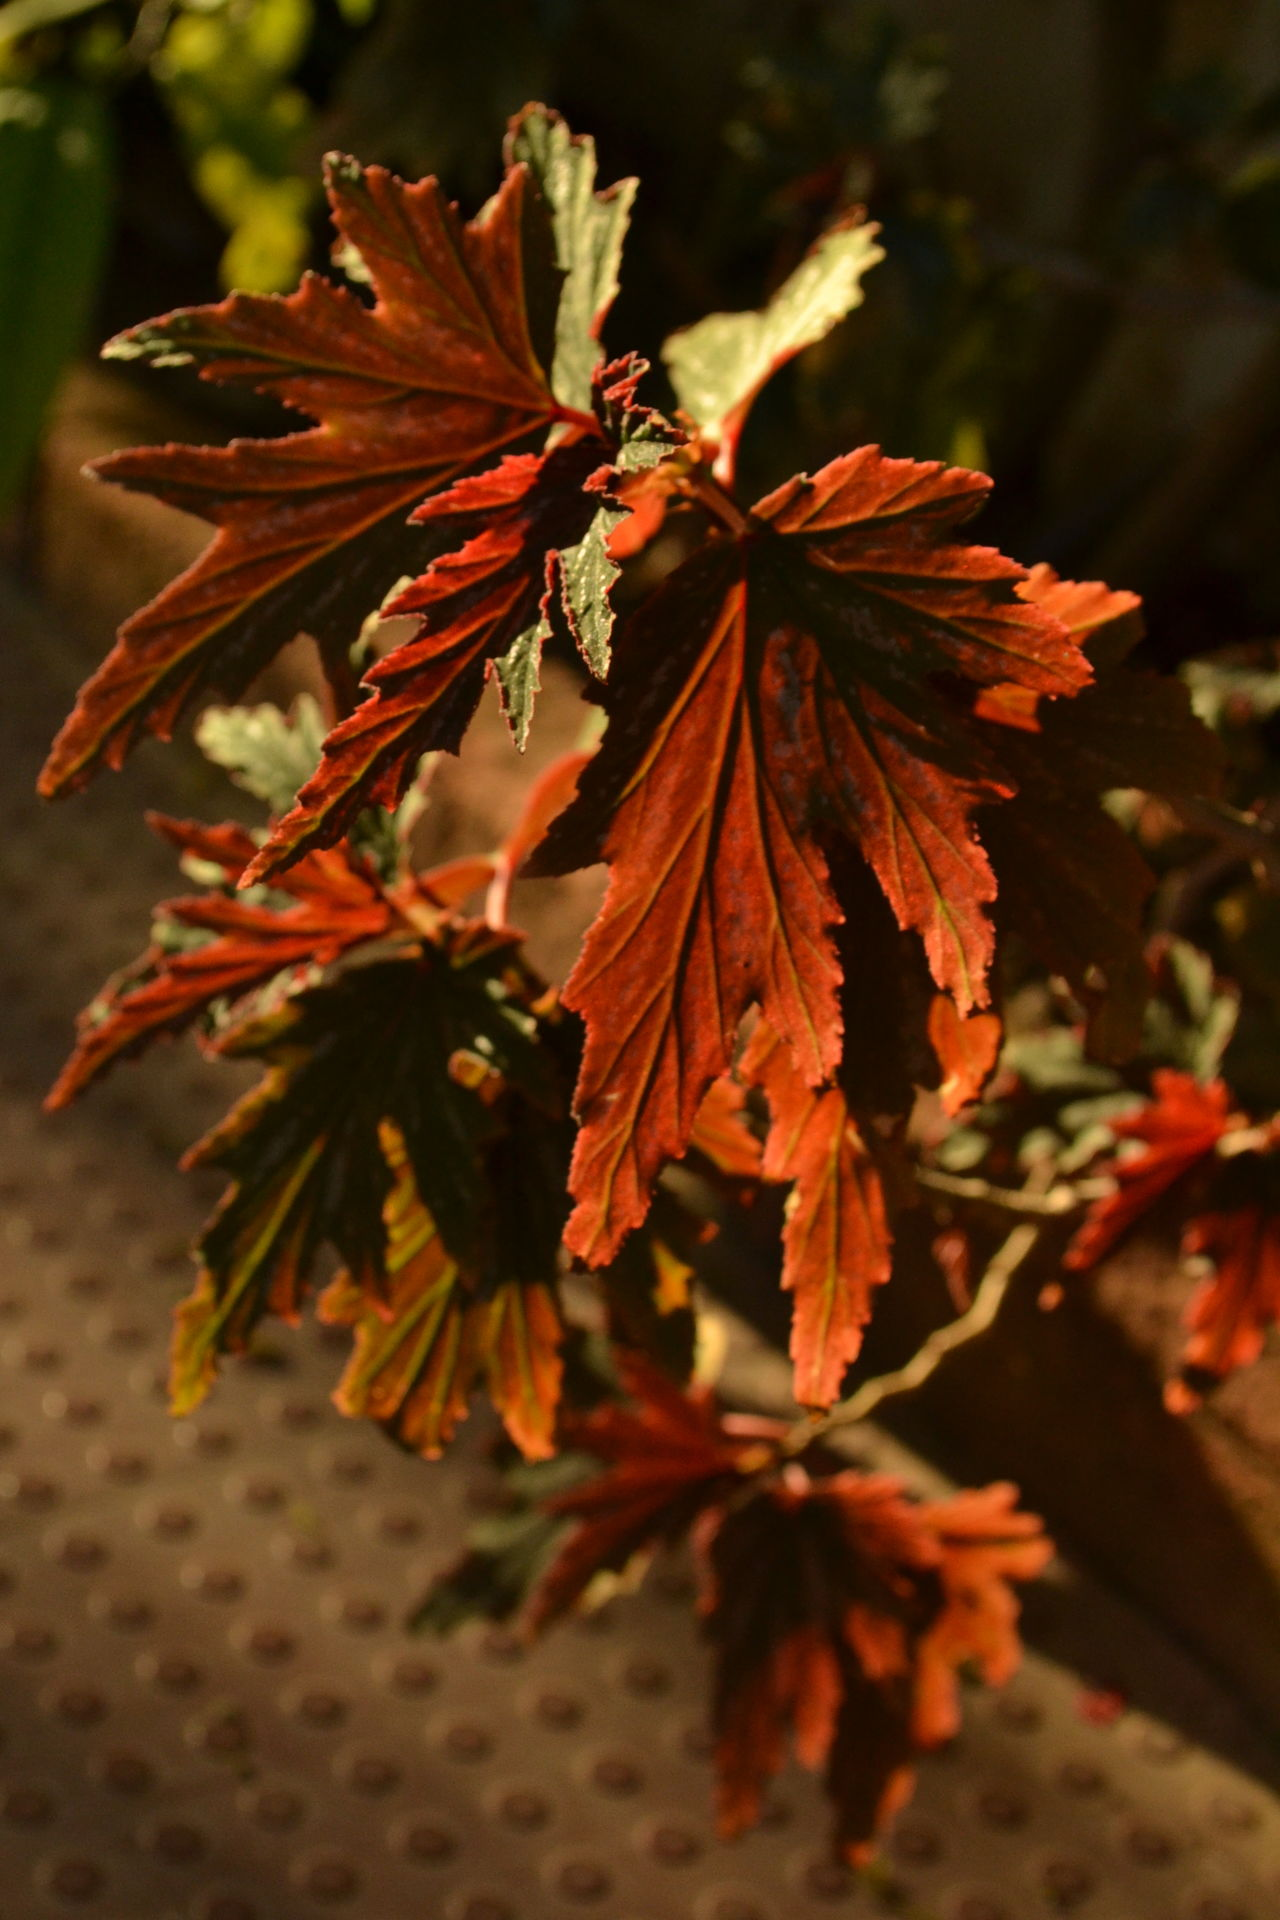 Bare beauty. #autumn #evening #eyeem Gallery #eyembestshot #home #incredible #love #Natural #Nature  #NoFilter #so Beautifu #springtime Close-up Growth Leaf Outdoors Plant Red Springtime Stem